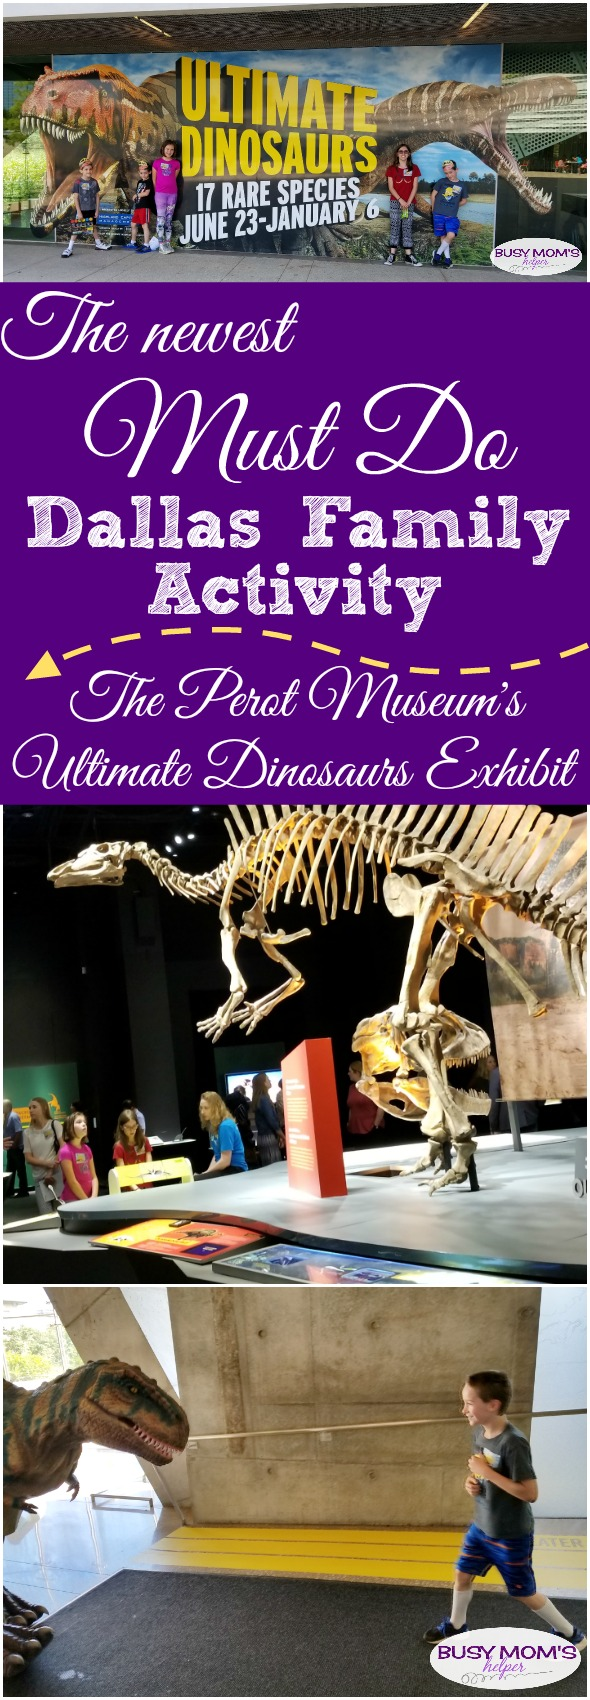 Newest Must Do Dallas Family Activity - the Perot Museum's Ultimate Dinosaur Exhibit! (partner) #dinosaur #perotmuseum #family #familyfun #familyactivity #dallas #texas #dfw